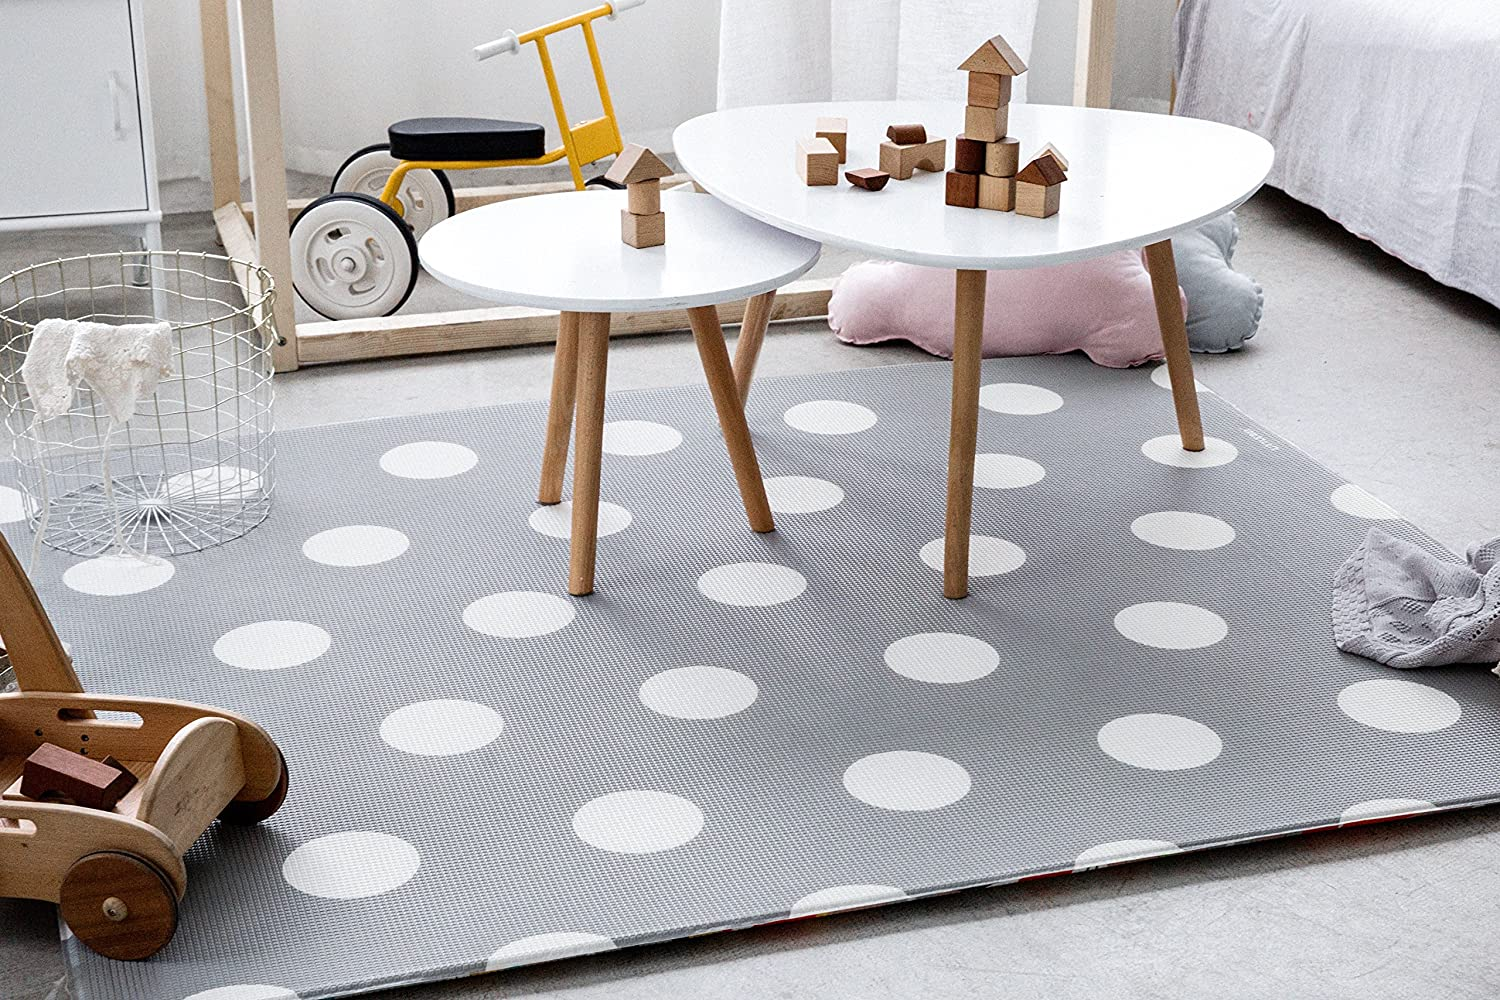 Little Bot baby foam play mat, non-toxic, odourless and ultra-cushioned. 180cm x 150cm. Race track and Polka dots (space grey) by Little Bot Little Bot Inc.